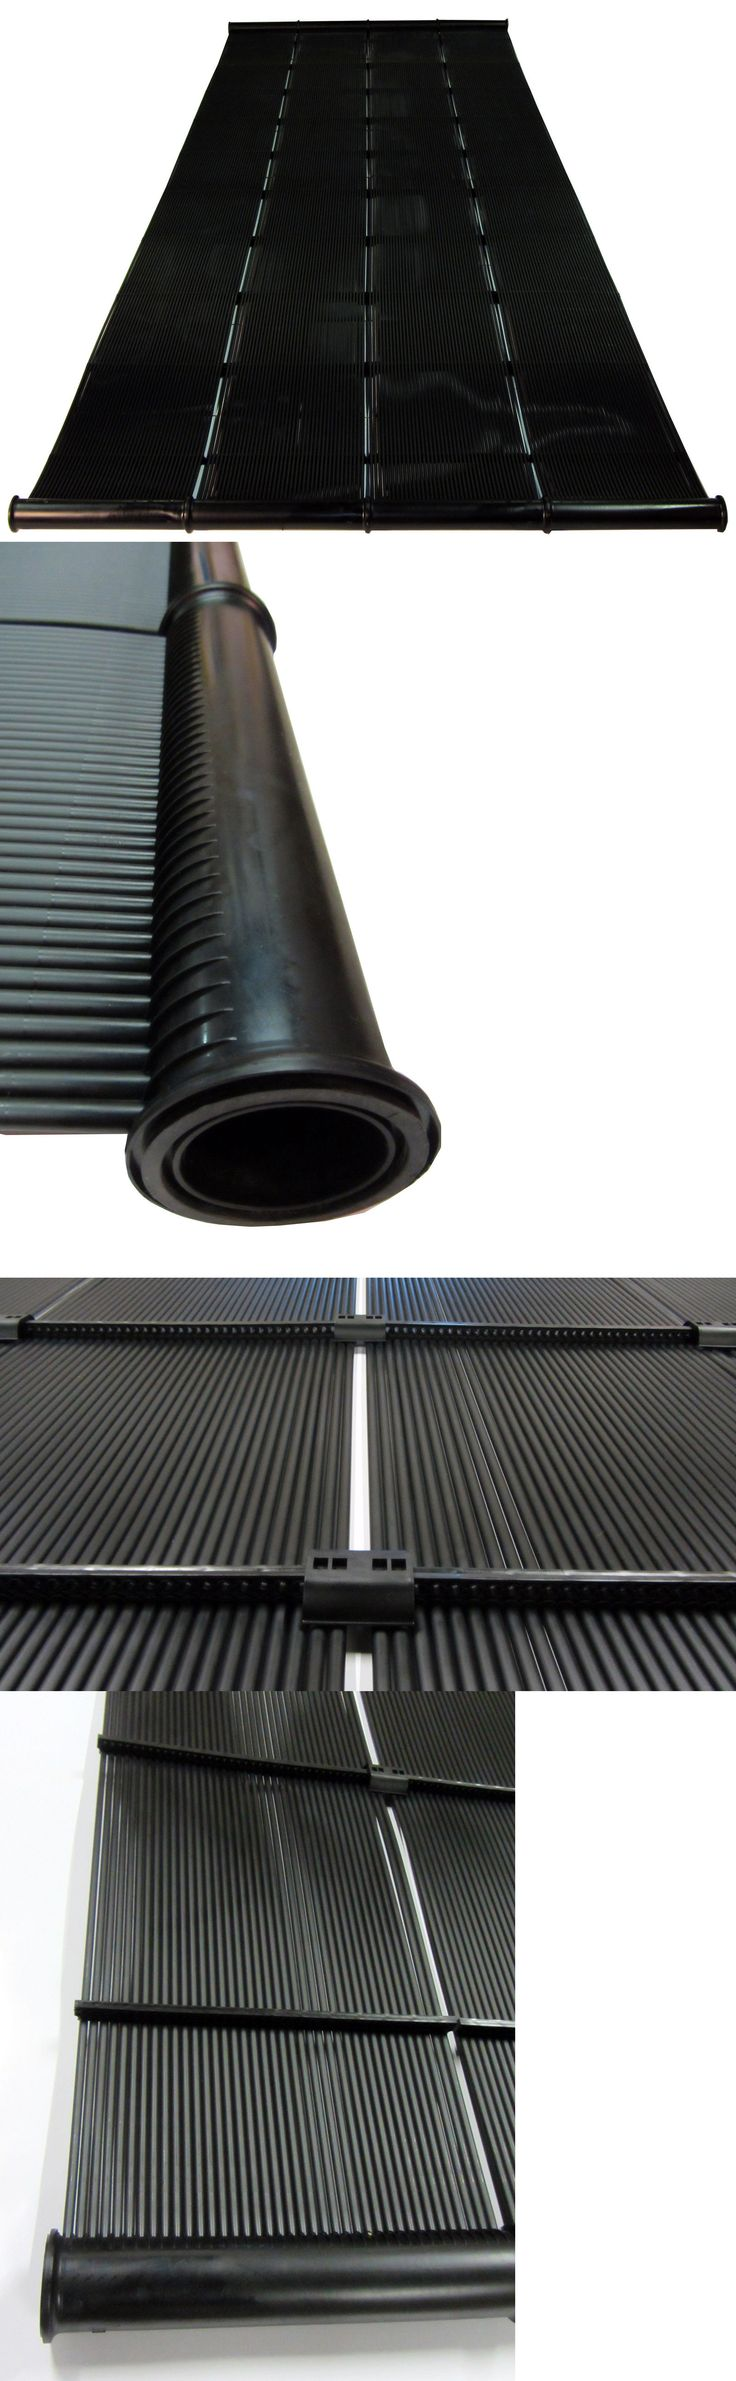 Pool Heaters and Solar Panels 42239: Heliocol Swimming Pool Solar Heating Panel 4 X 12 6 - Hc-50 -> BUY IT NOW ONLY: $1033.49 on eBay!